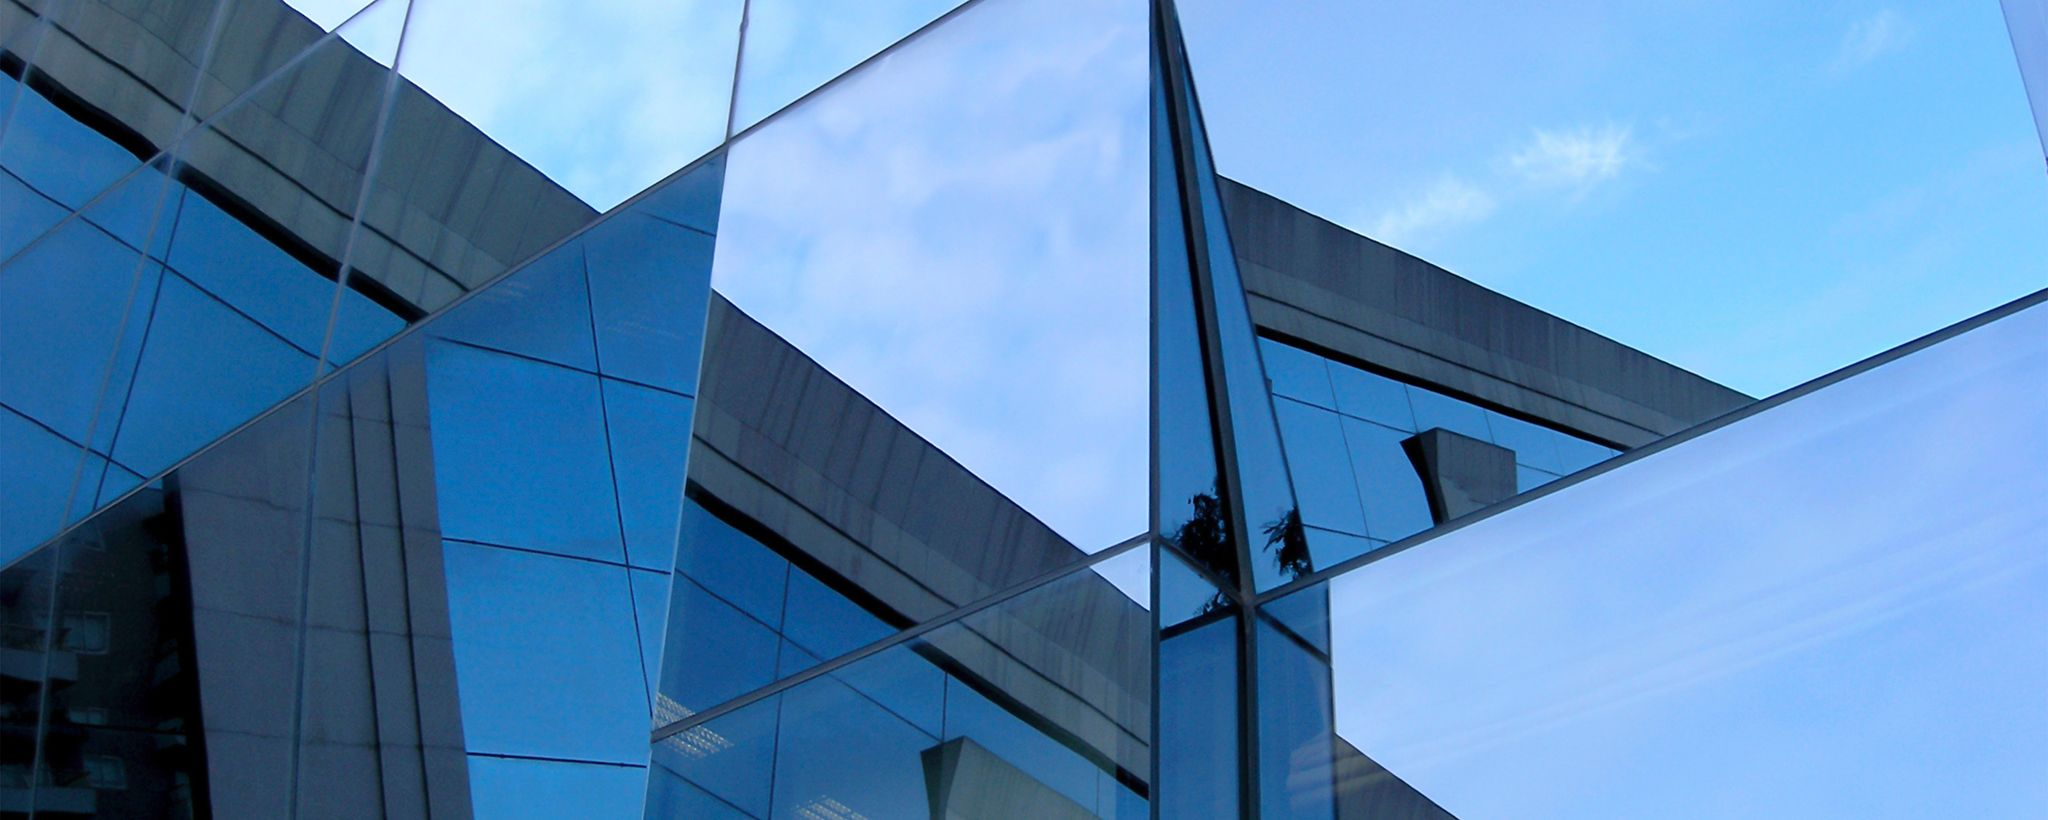 Heat-resistant glass: features manufacturing and application